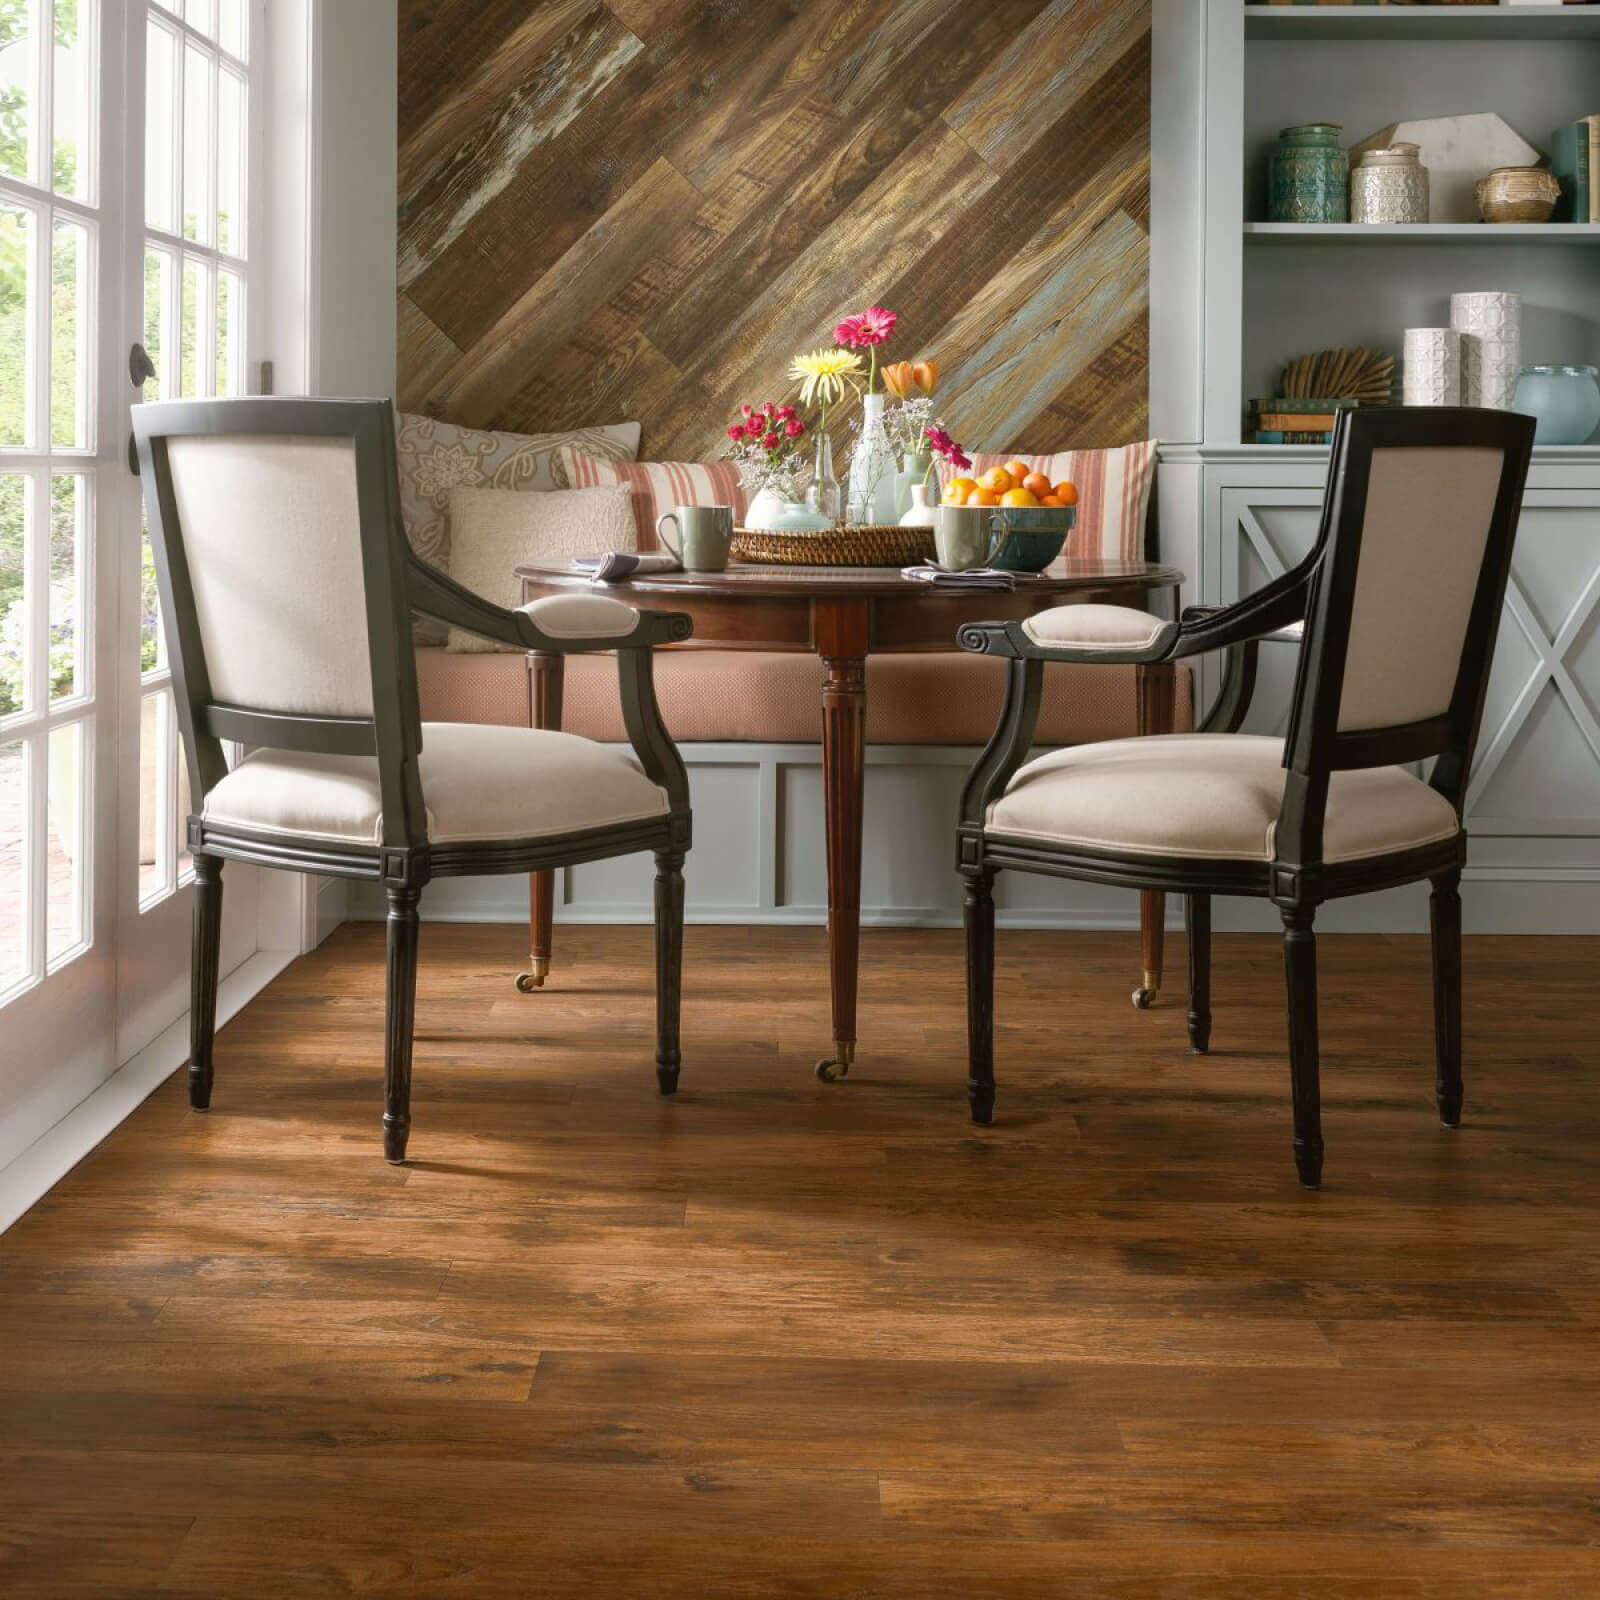 Small dining table on laminate floor | Floors by Roberts